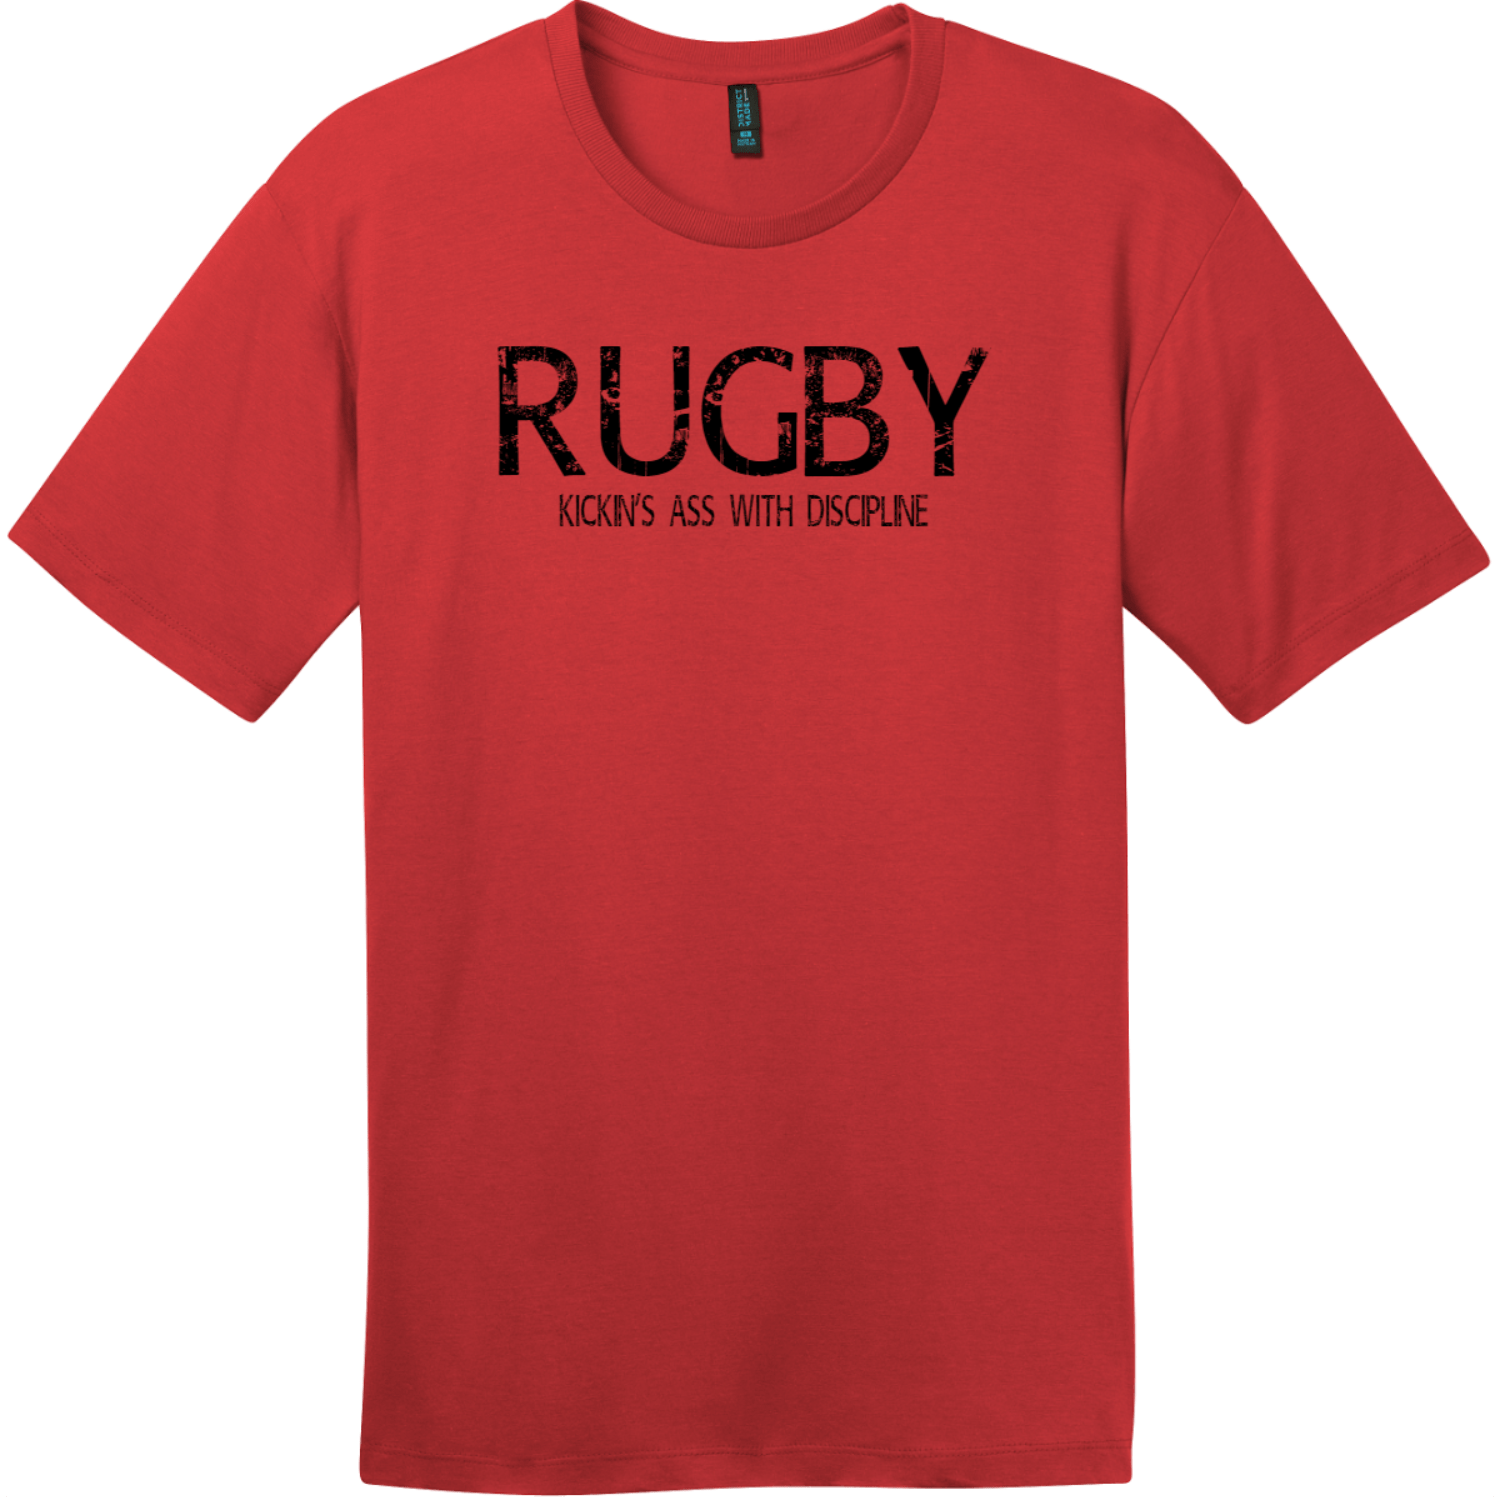 Rugby Kickin Ass With Discipline T-Shirt Classic Red District Perfect Weight Tee DT104